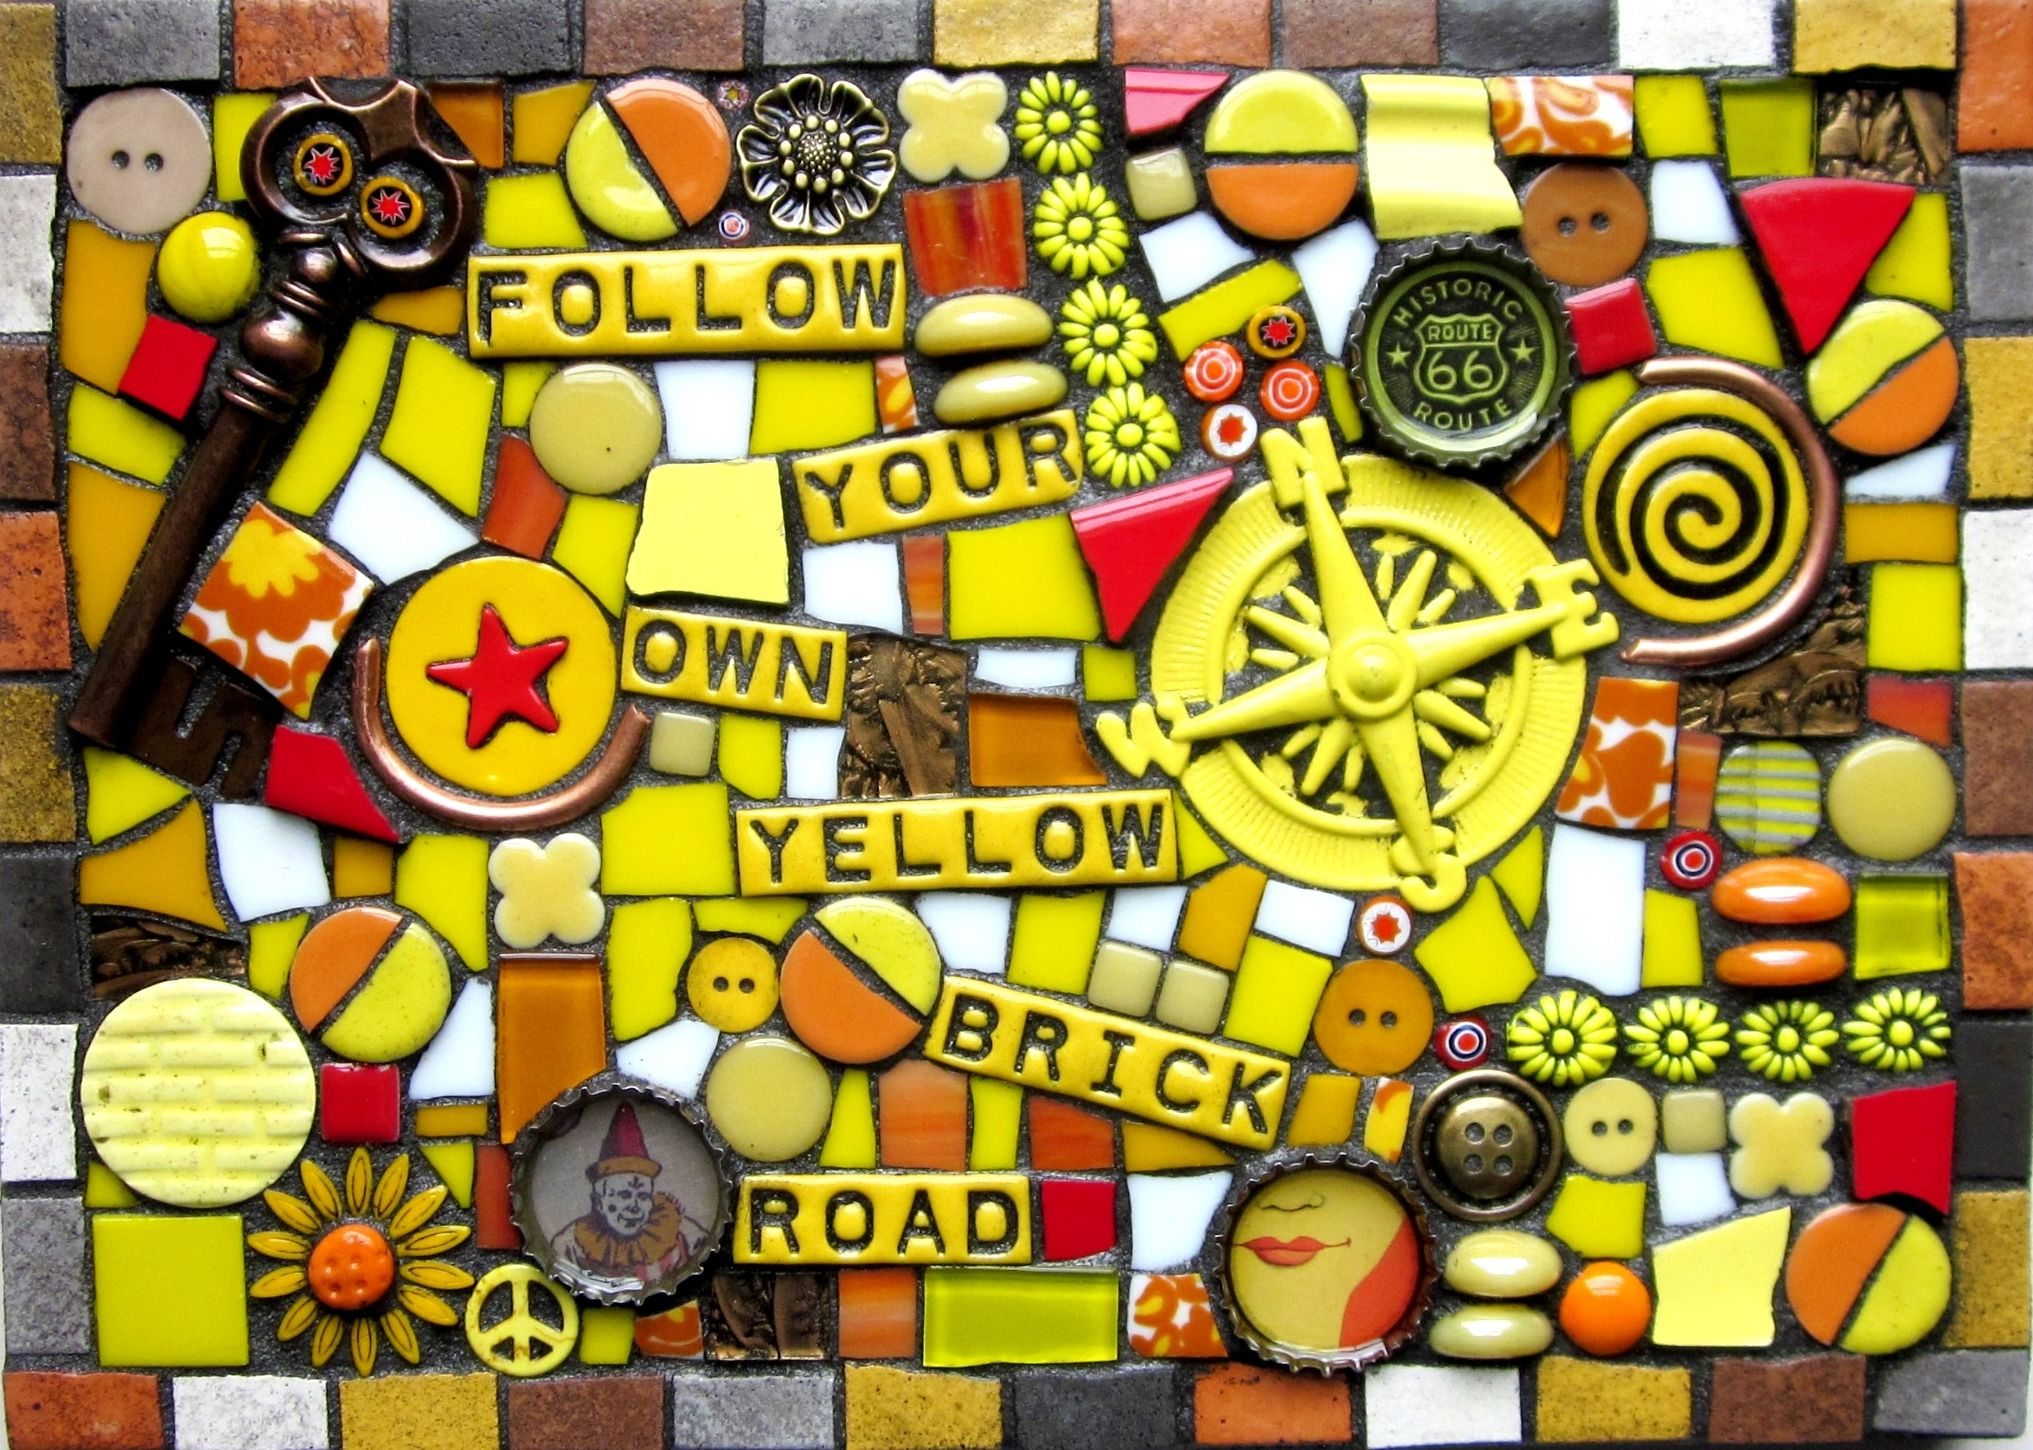 FOLLOW YOUR OWN YELLOW BRICK ROAD! wizard of oz mosaic mixed media ...